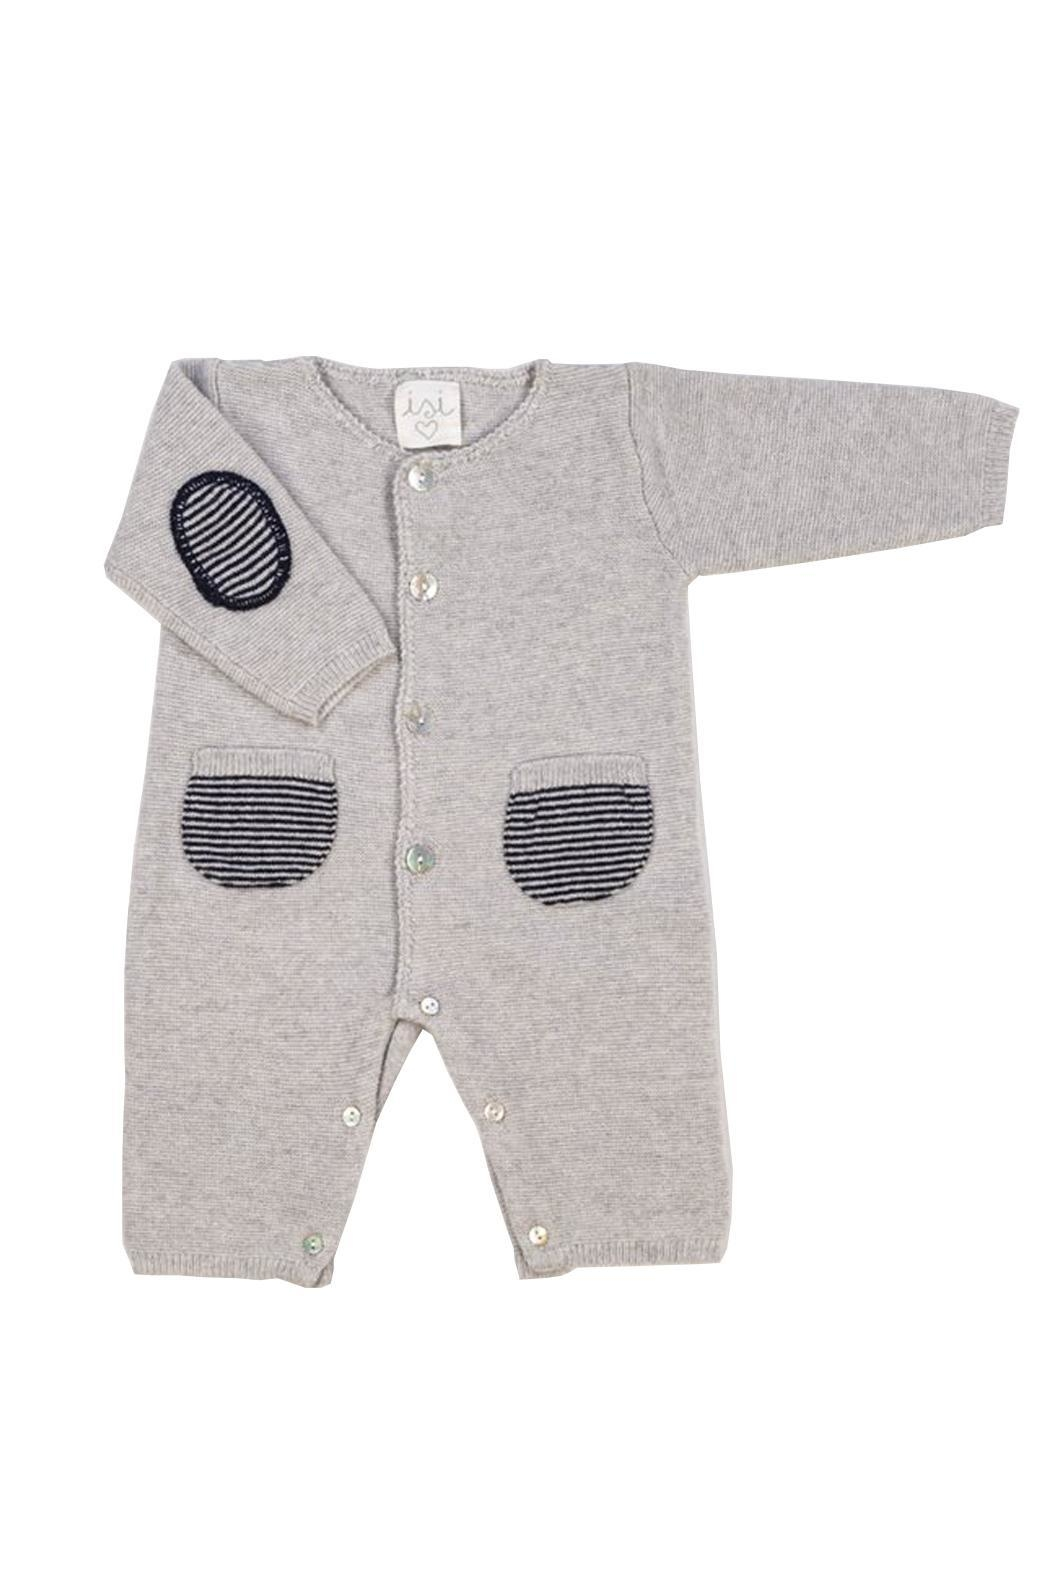 Malvi & Co. Grey Romper. - Front Cropped Image